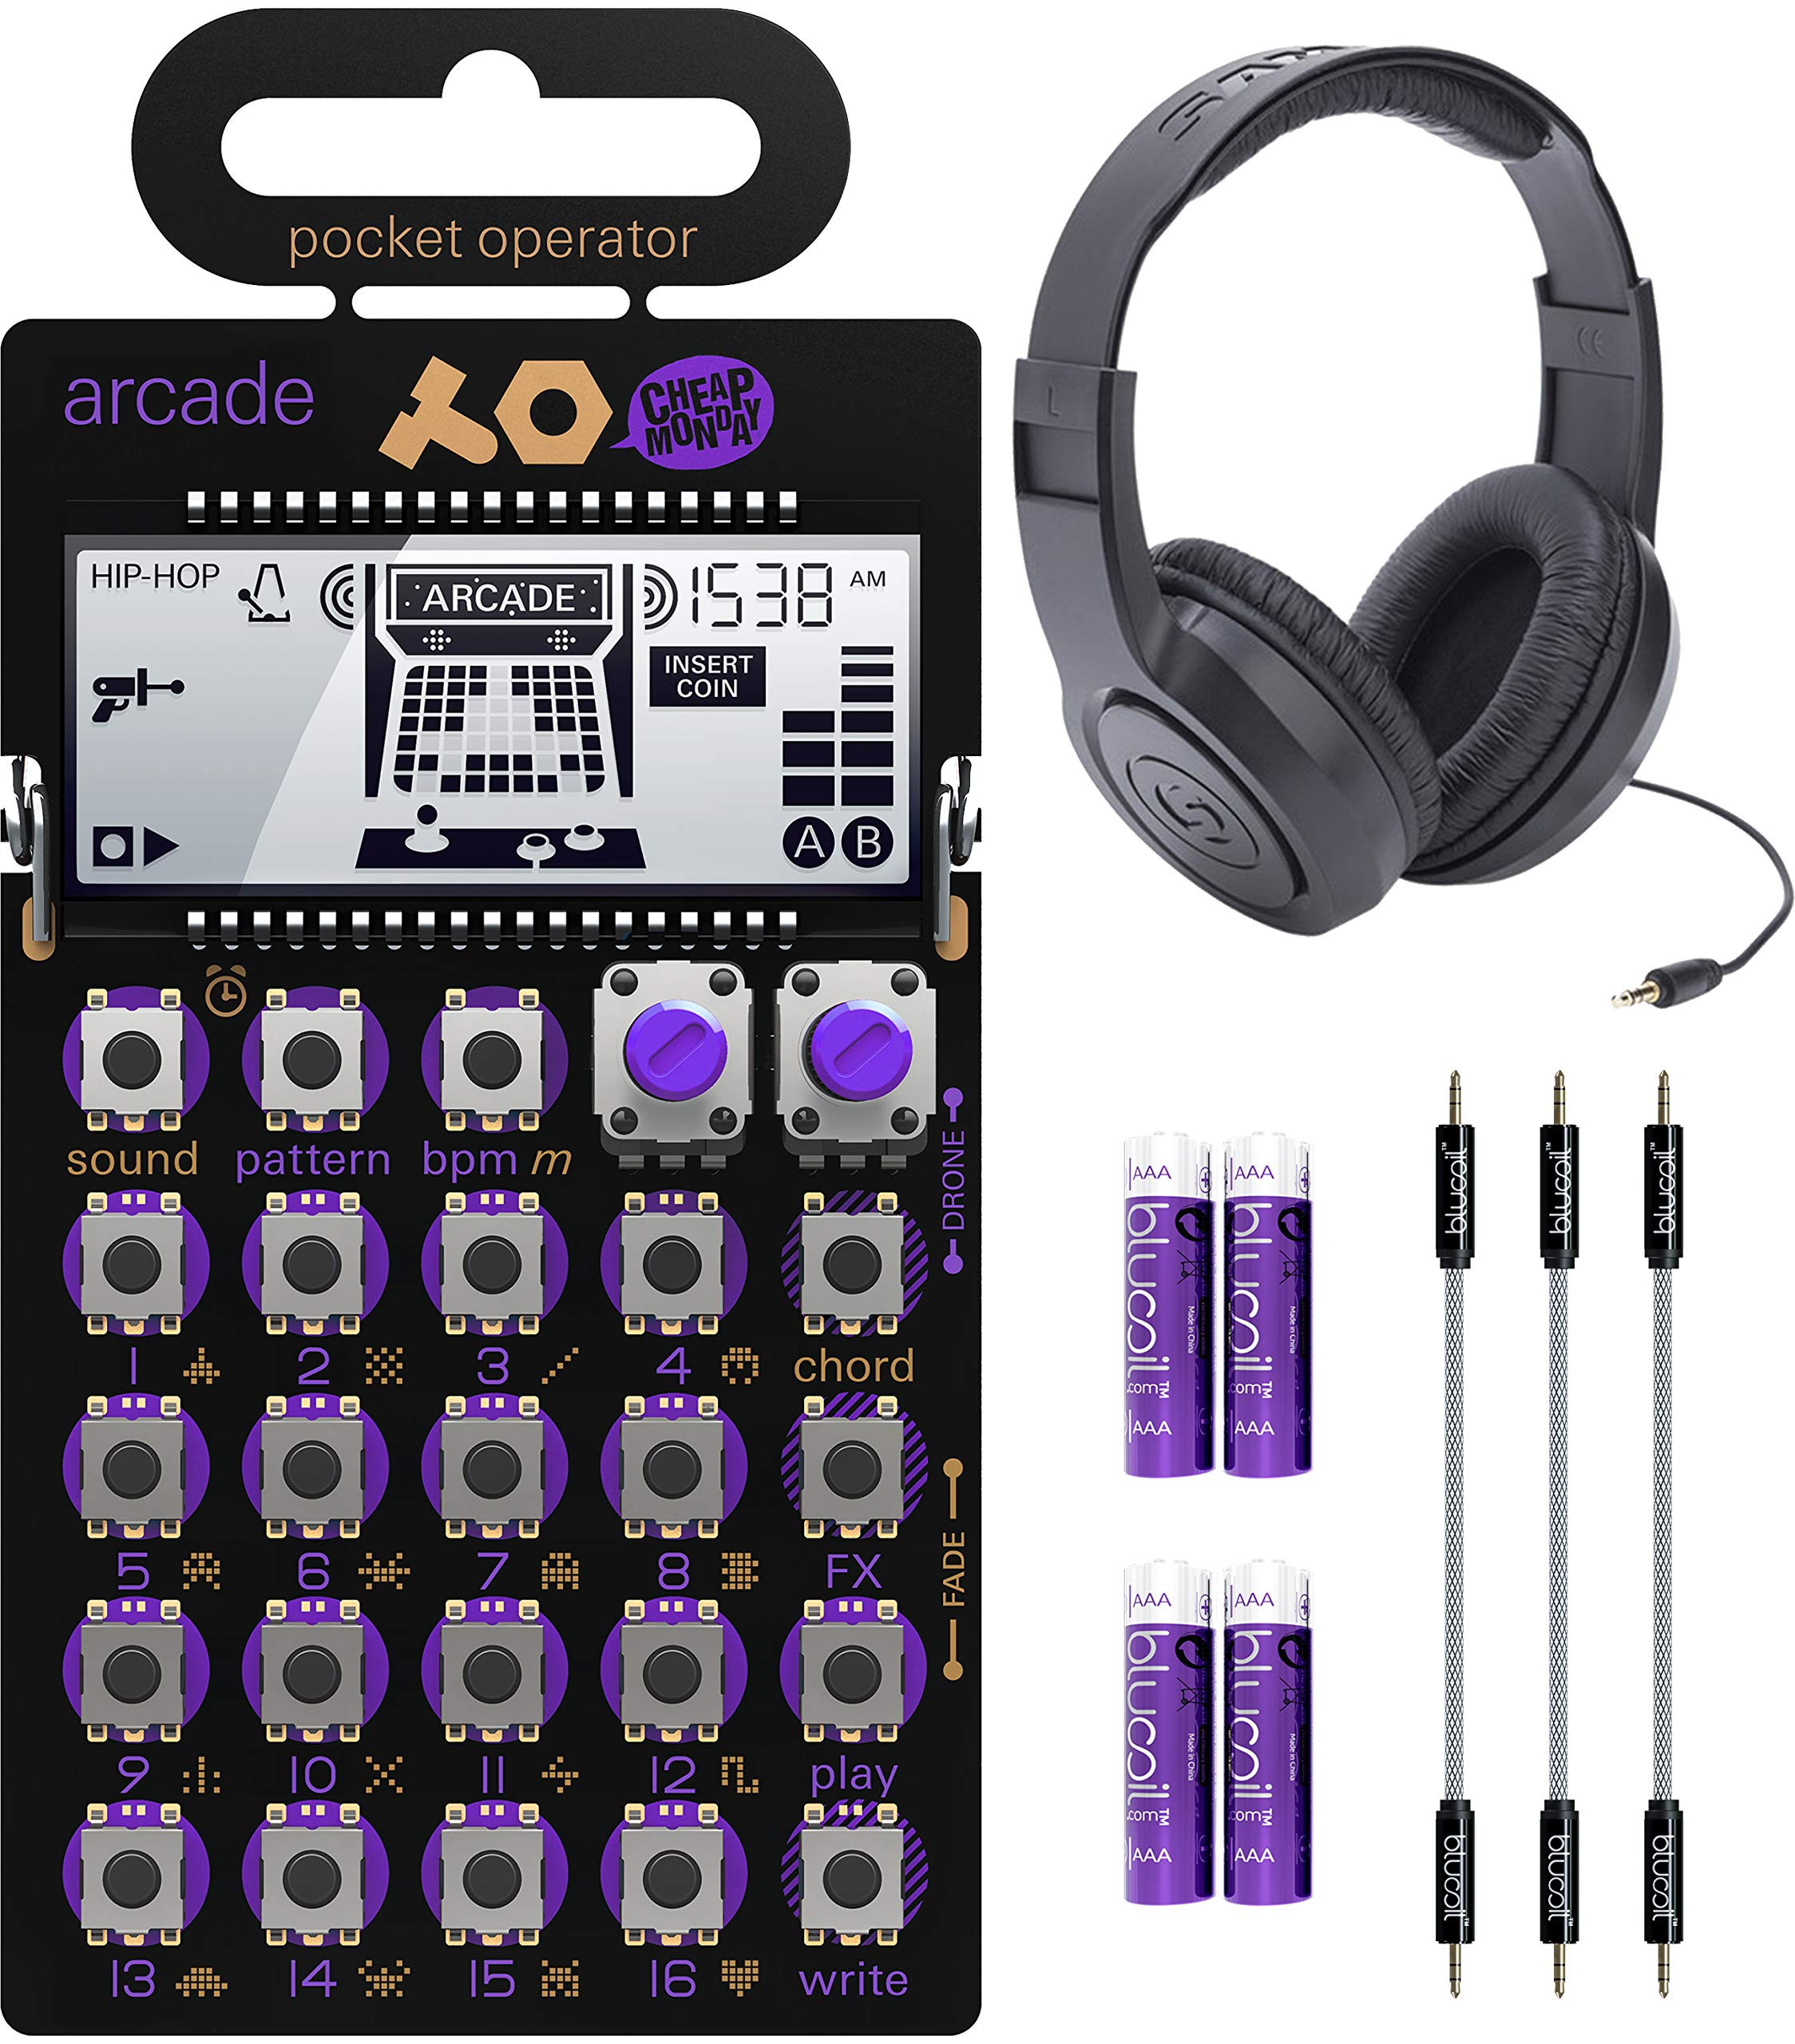 Teenage Engineering PO-20 Pocket Operator Arcade Synthesizer Bundle with Samson SR350 Over-Ear Closed-Back Headphones, Blucoil 3-Pack of 7'' Audio Aux Cables, and 4 AAA Batteries by blucoil